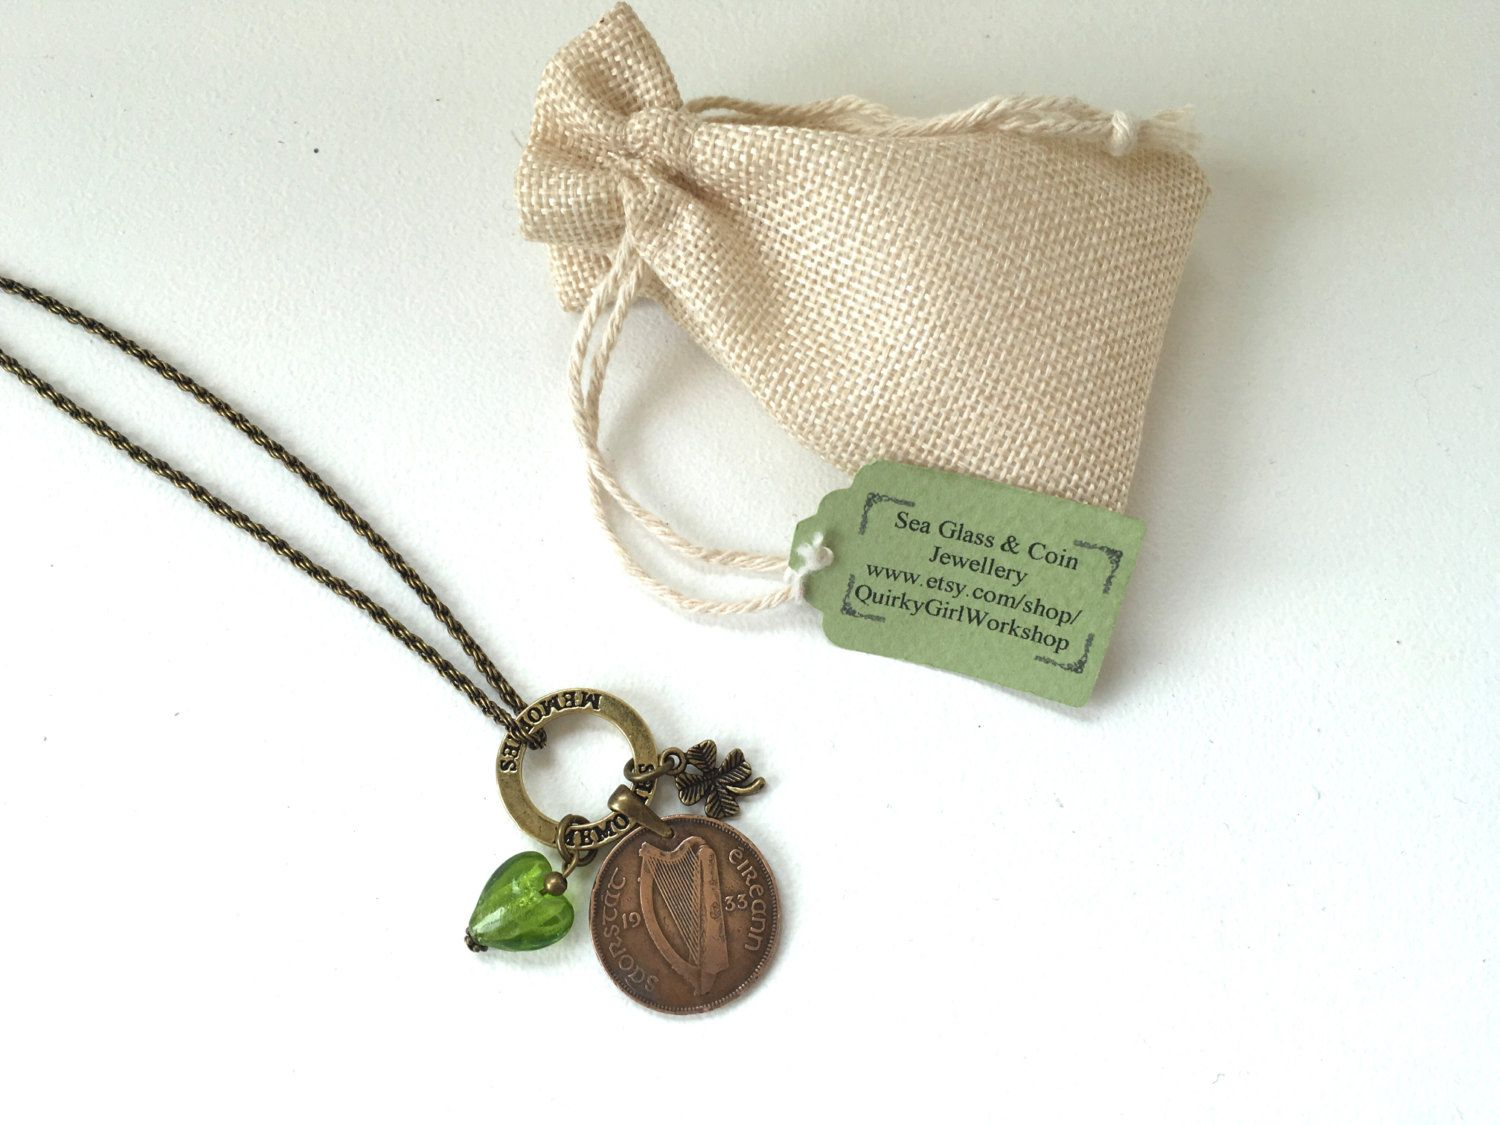 1933 Irish coin necklace, 83rd birthday gift for her